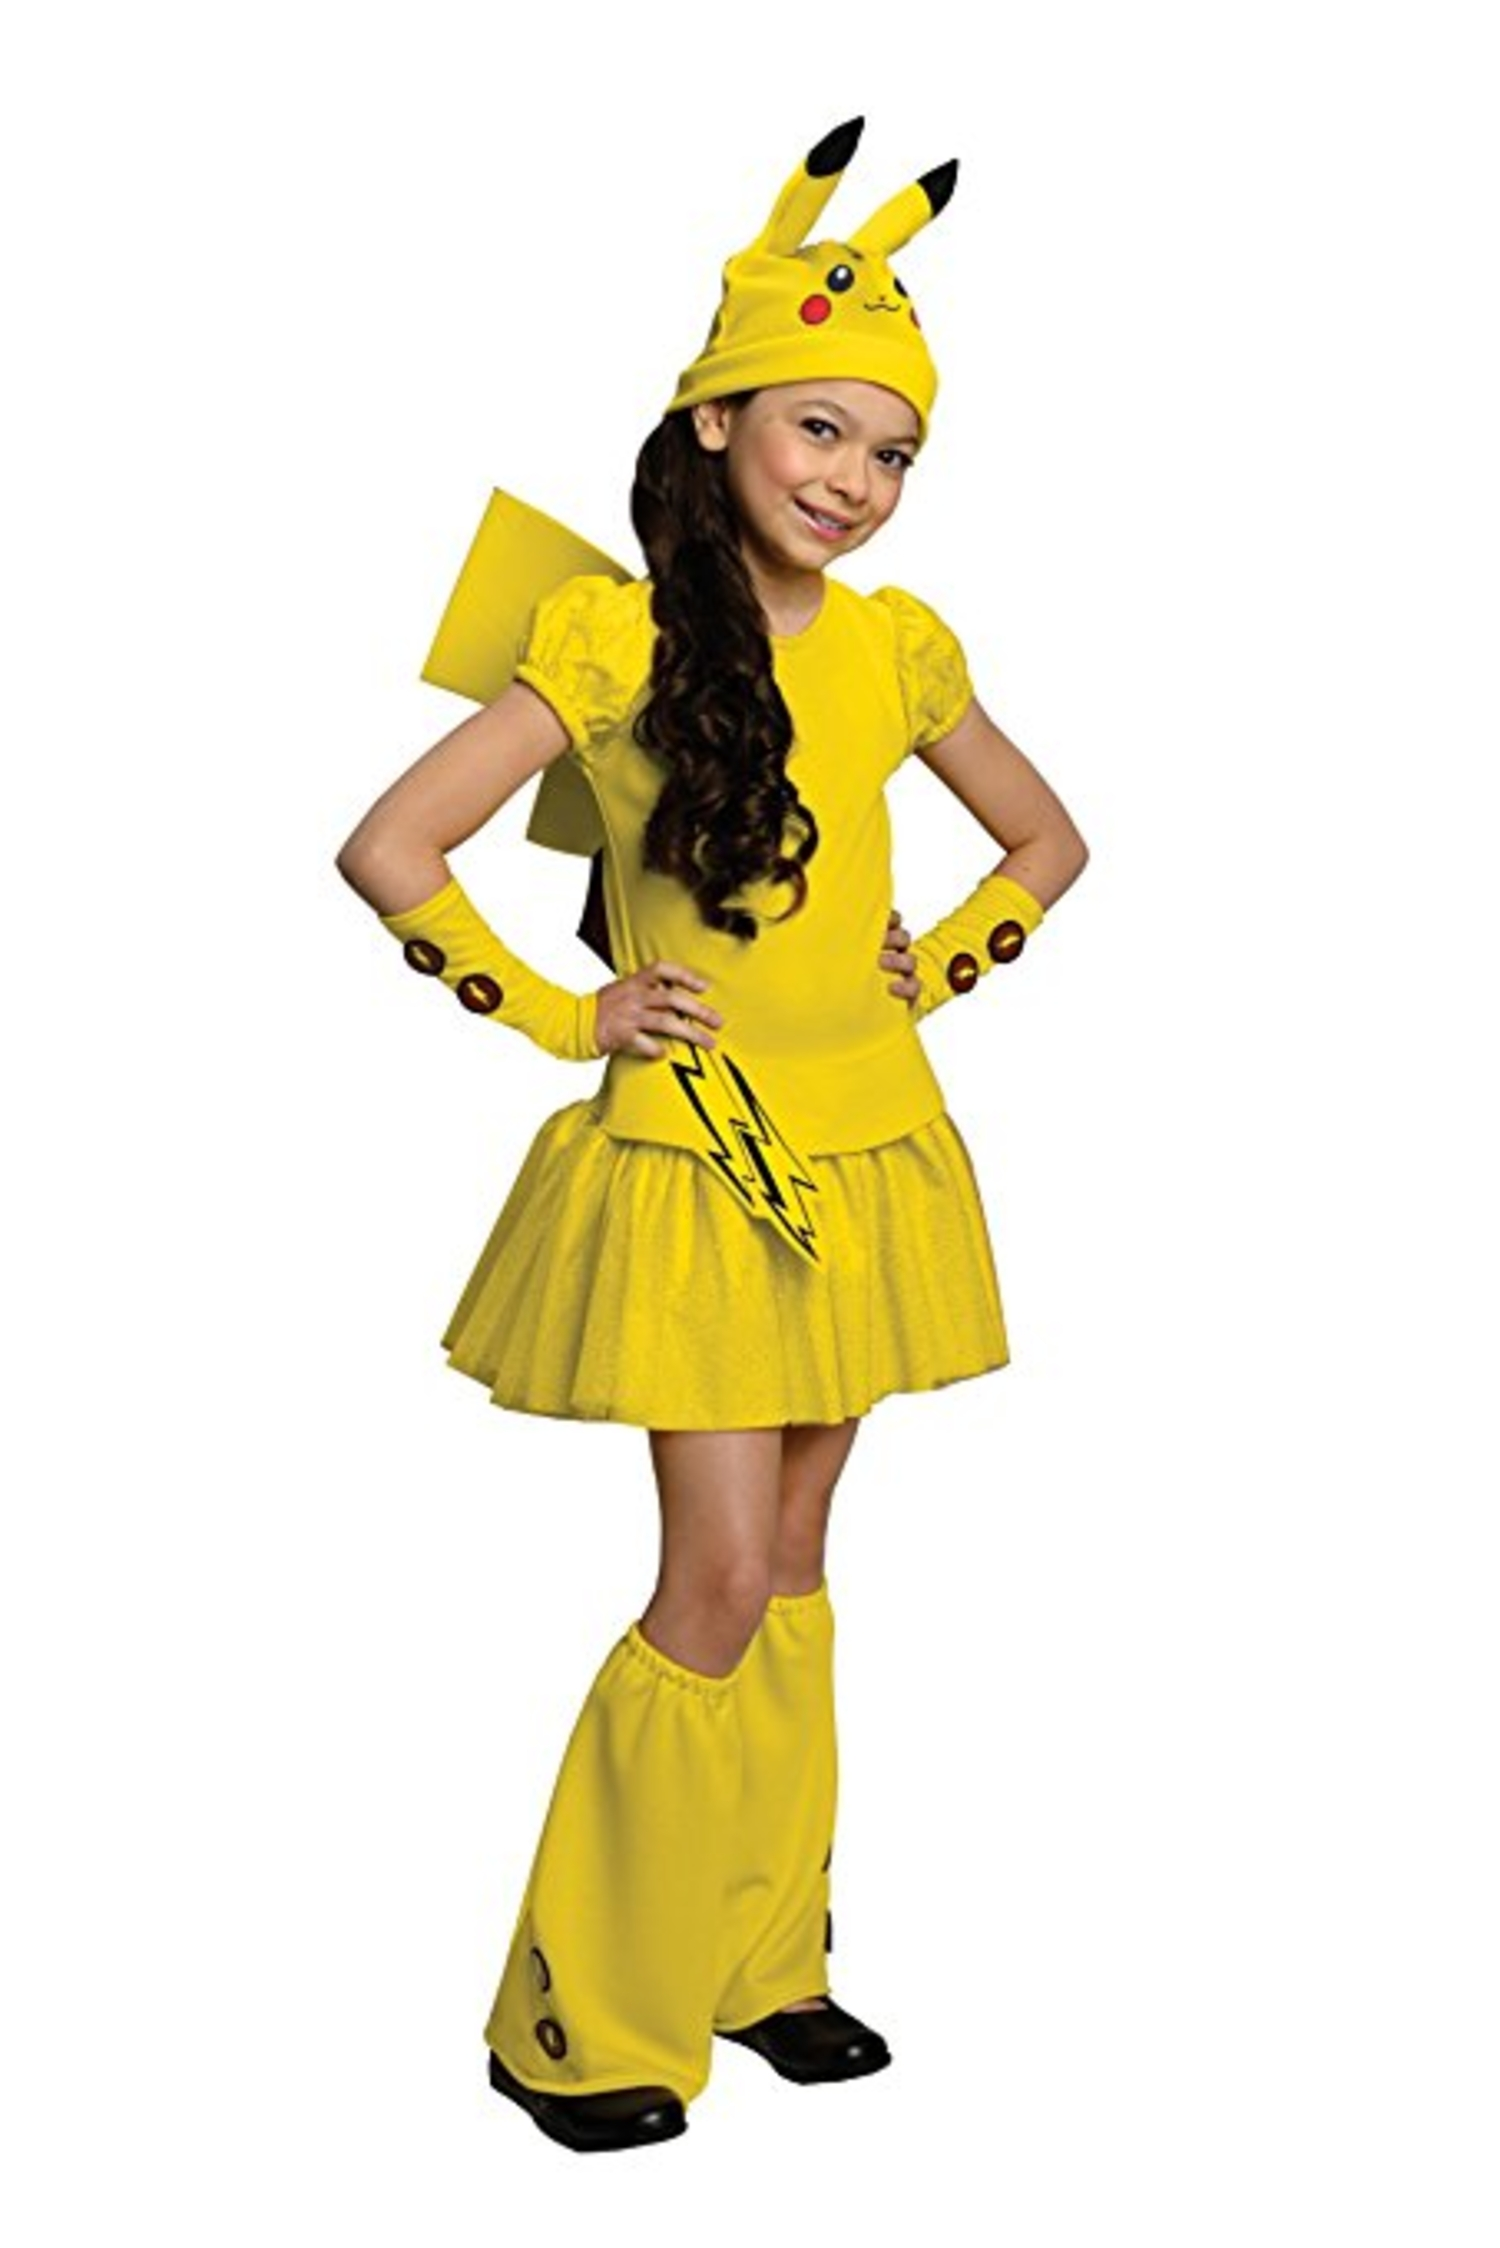 Pokemon Halloween Costume.jpg